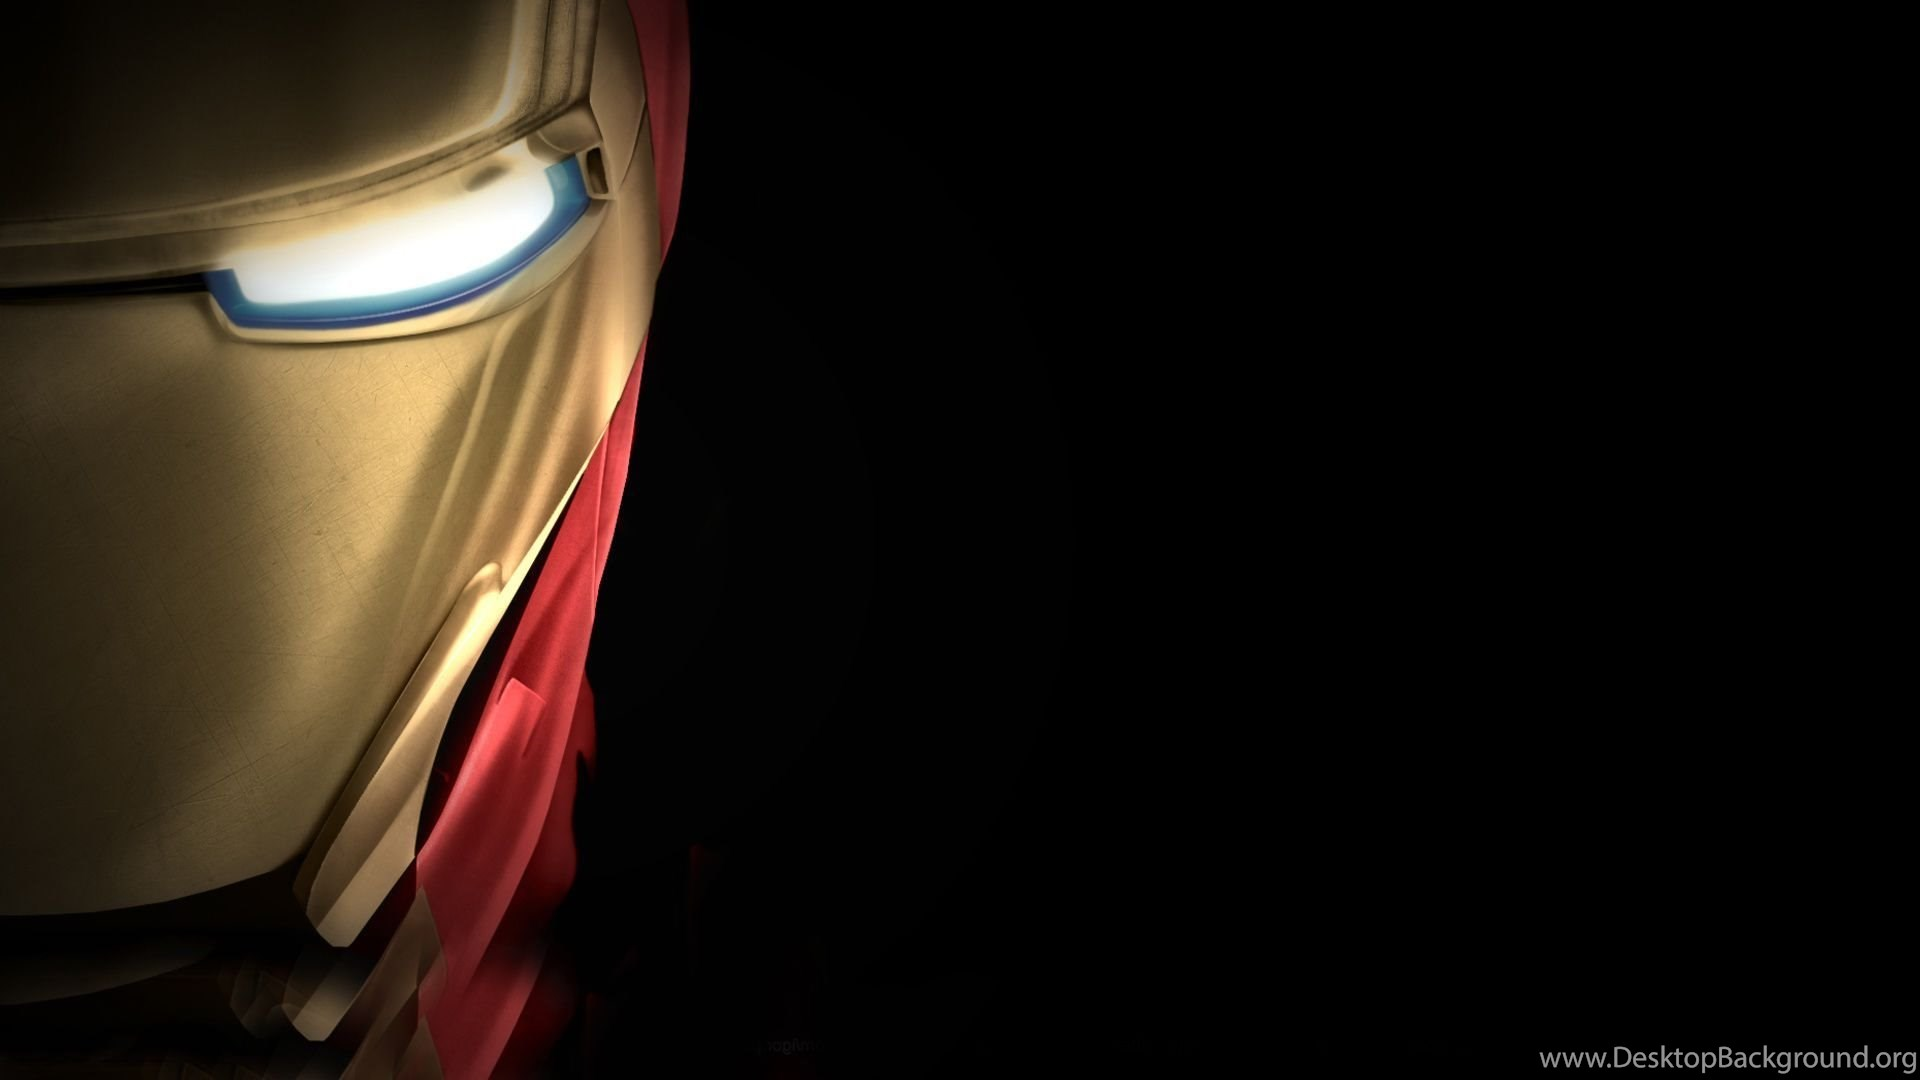 Hd Wallpapers Iron Man 3 Wallpapers Cave Desktop Background